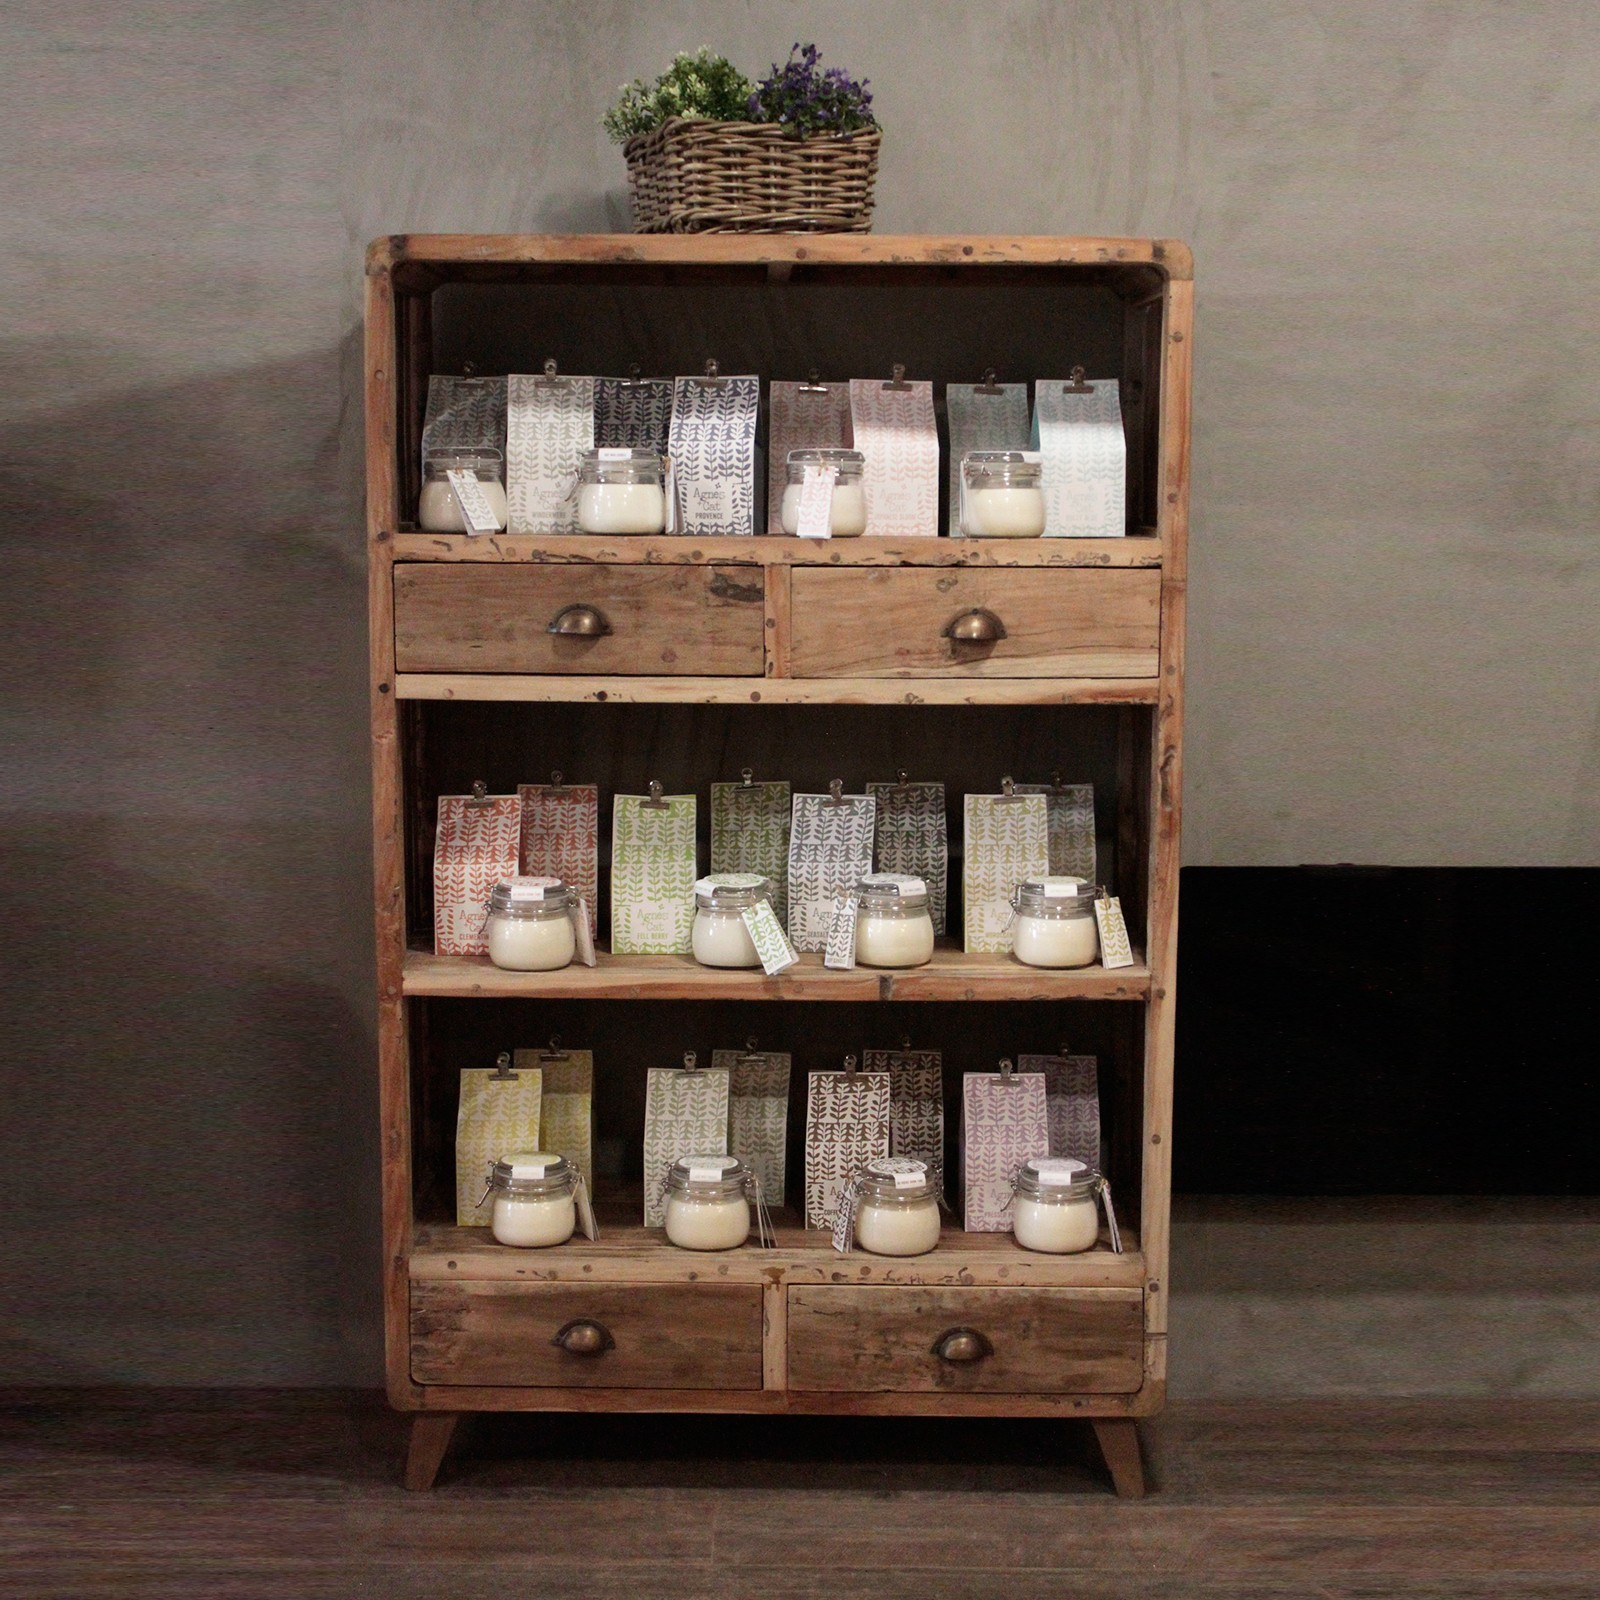 Recyclled shelf display unit from Bali